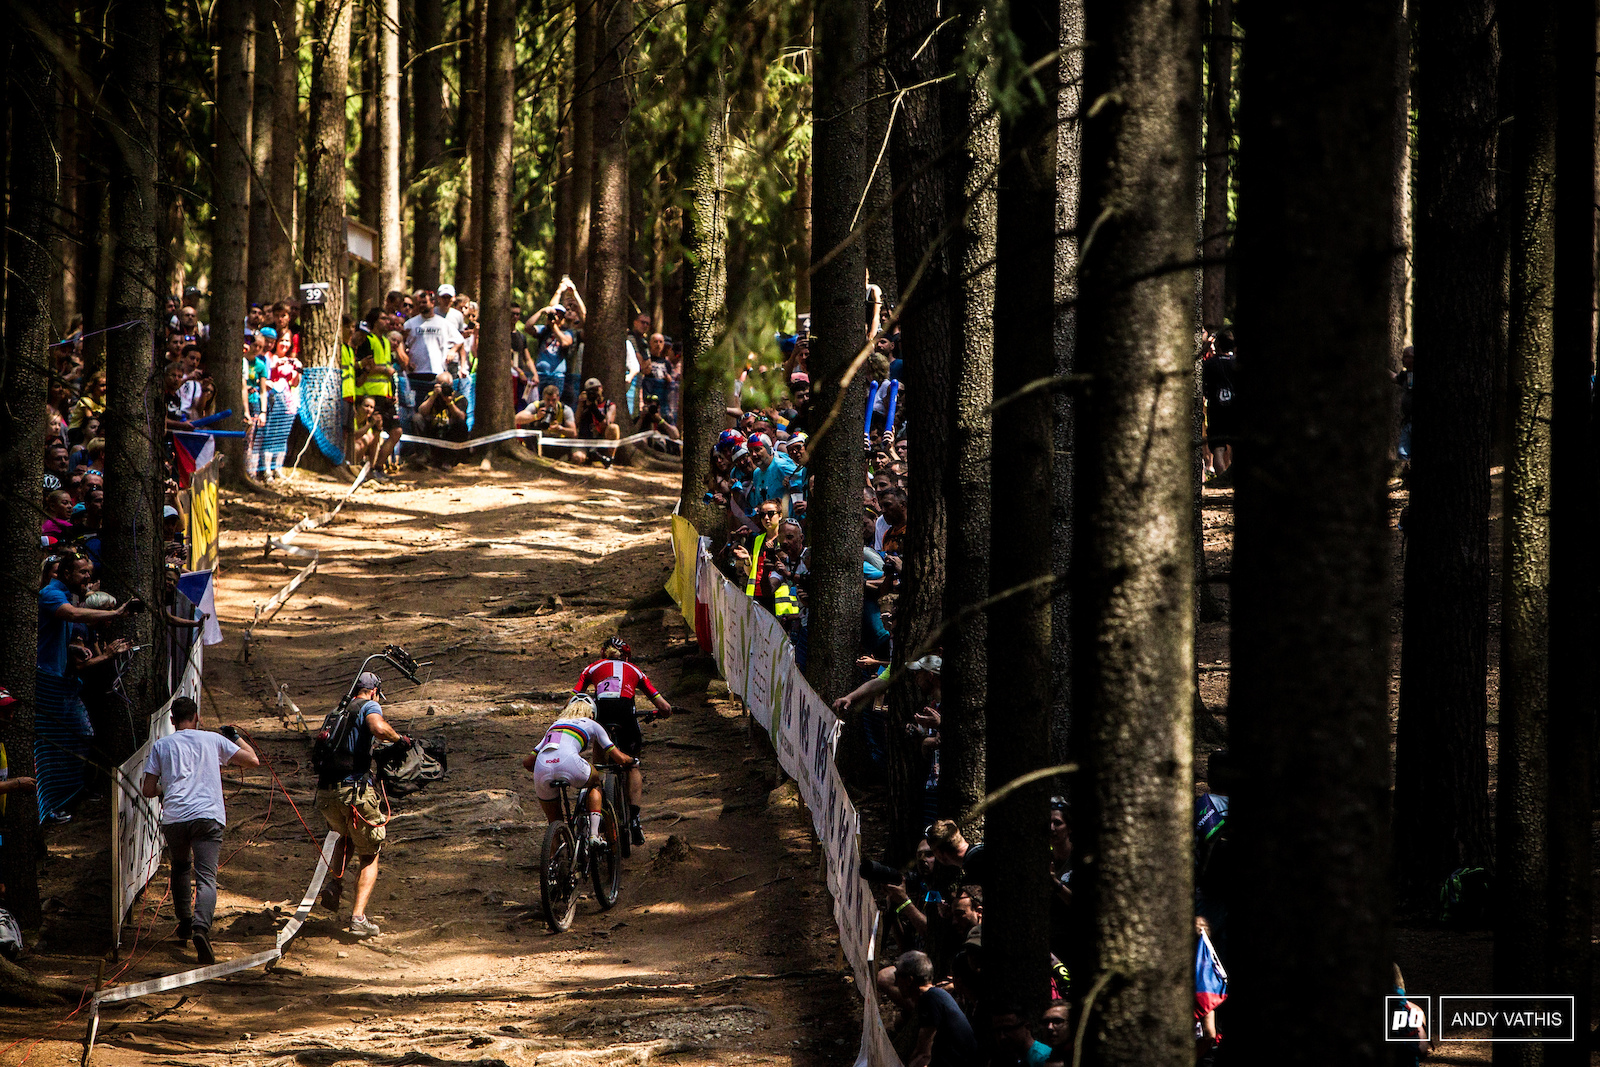 Annika Langvad and Jolanda Neff s fight in 2018 was as good as racing gets. It boiled down to a drag race down the finish straight.